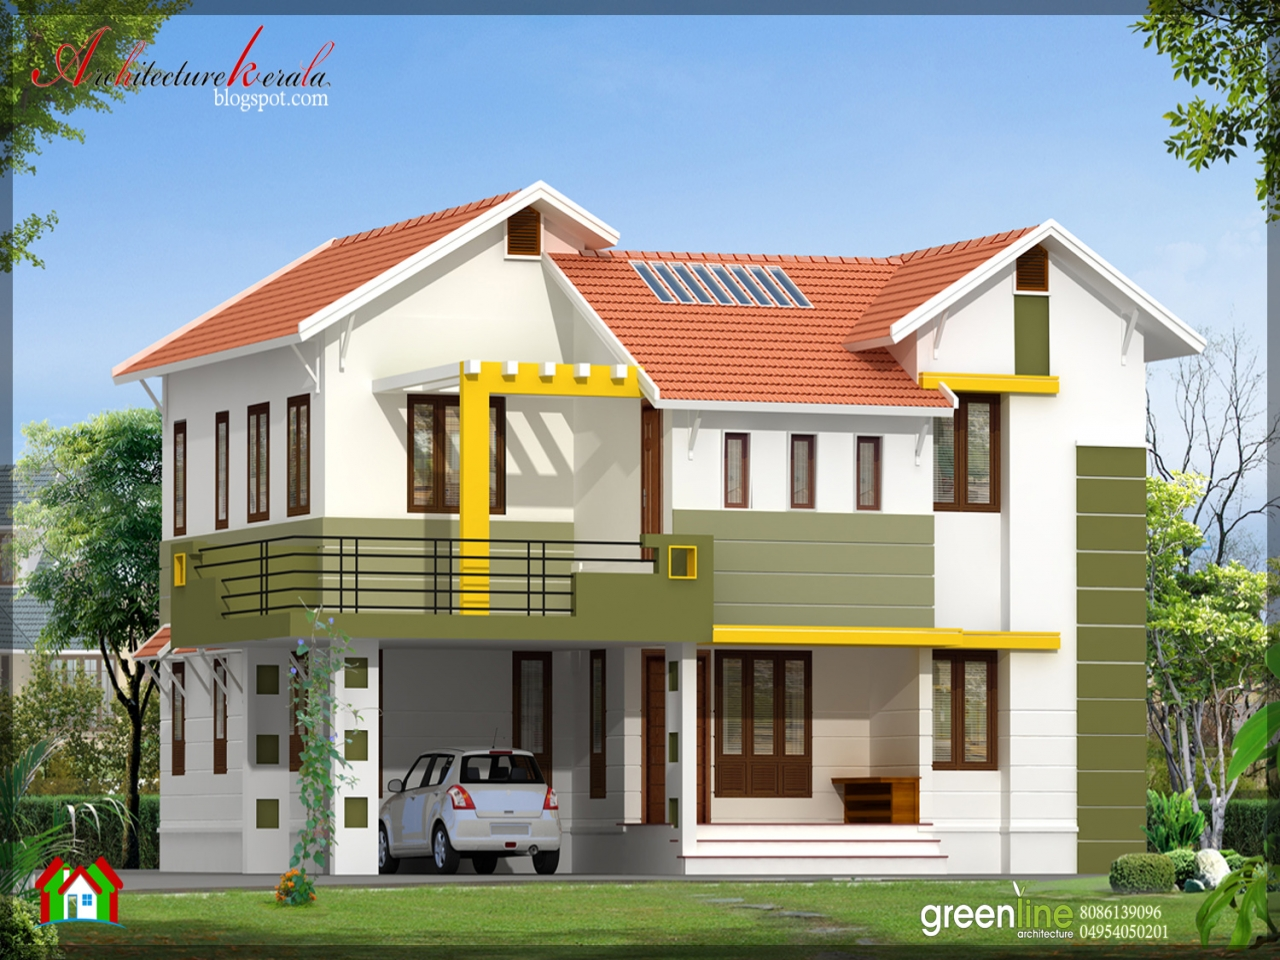 Simple modern house designs simple house design in india Simple house model design